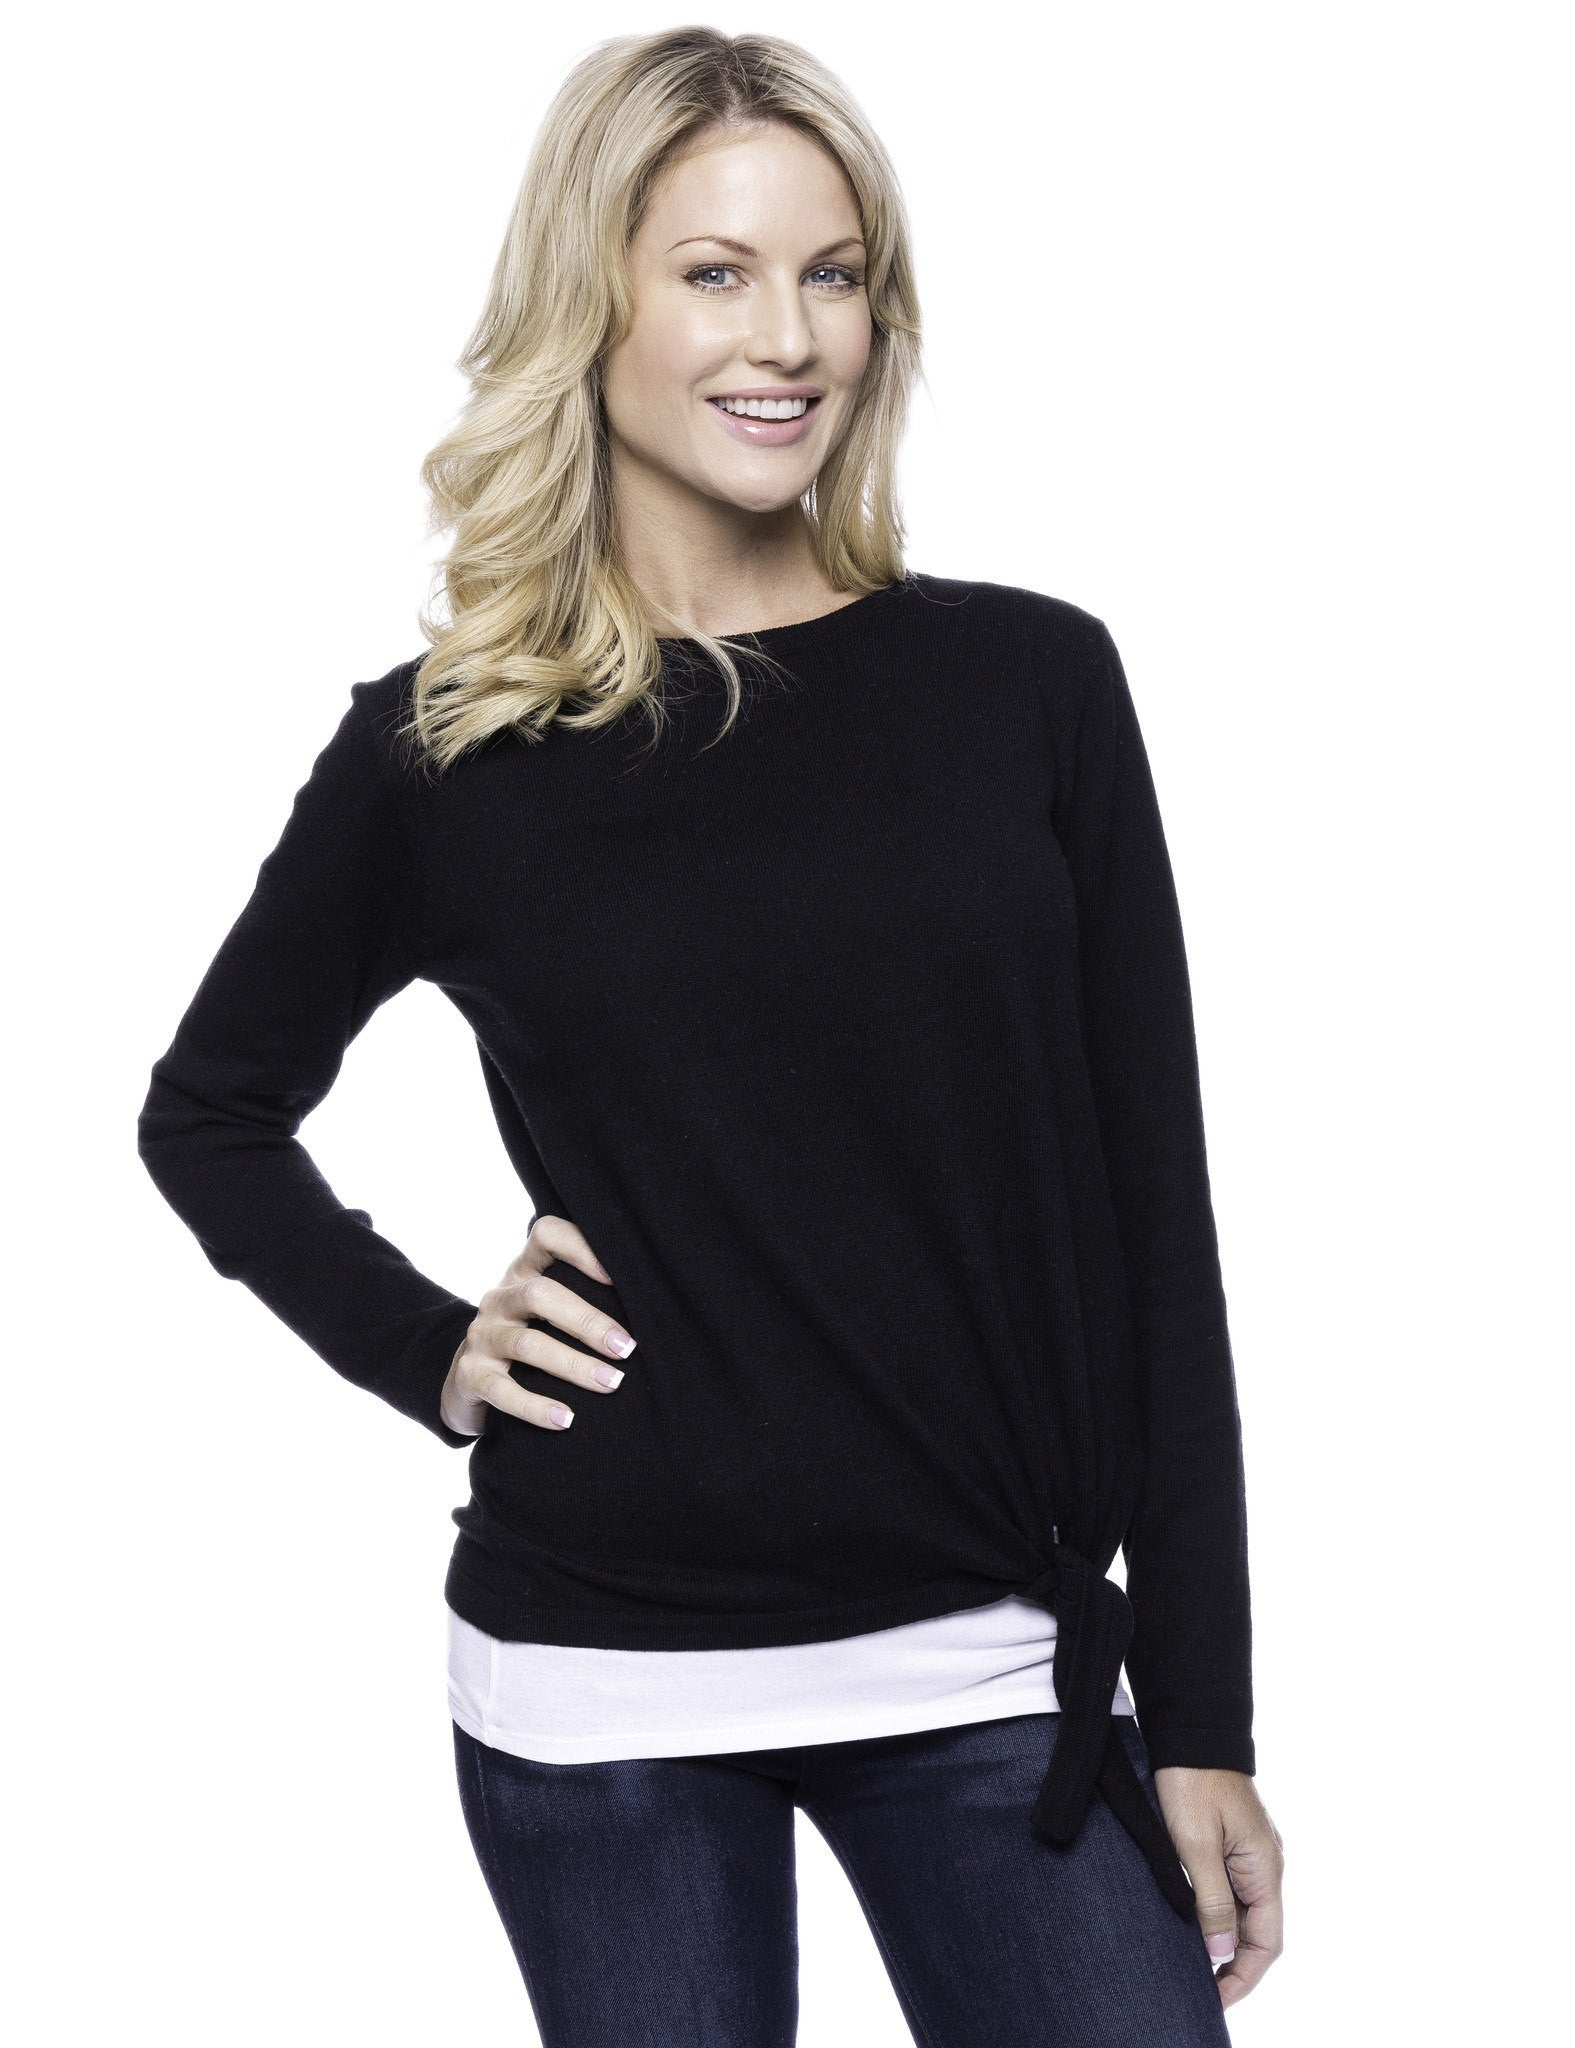 Cashmere Blend Bateau Neck Sweater with Hem Tie - Black